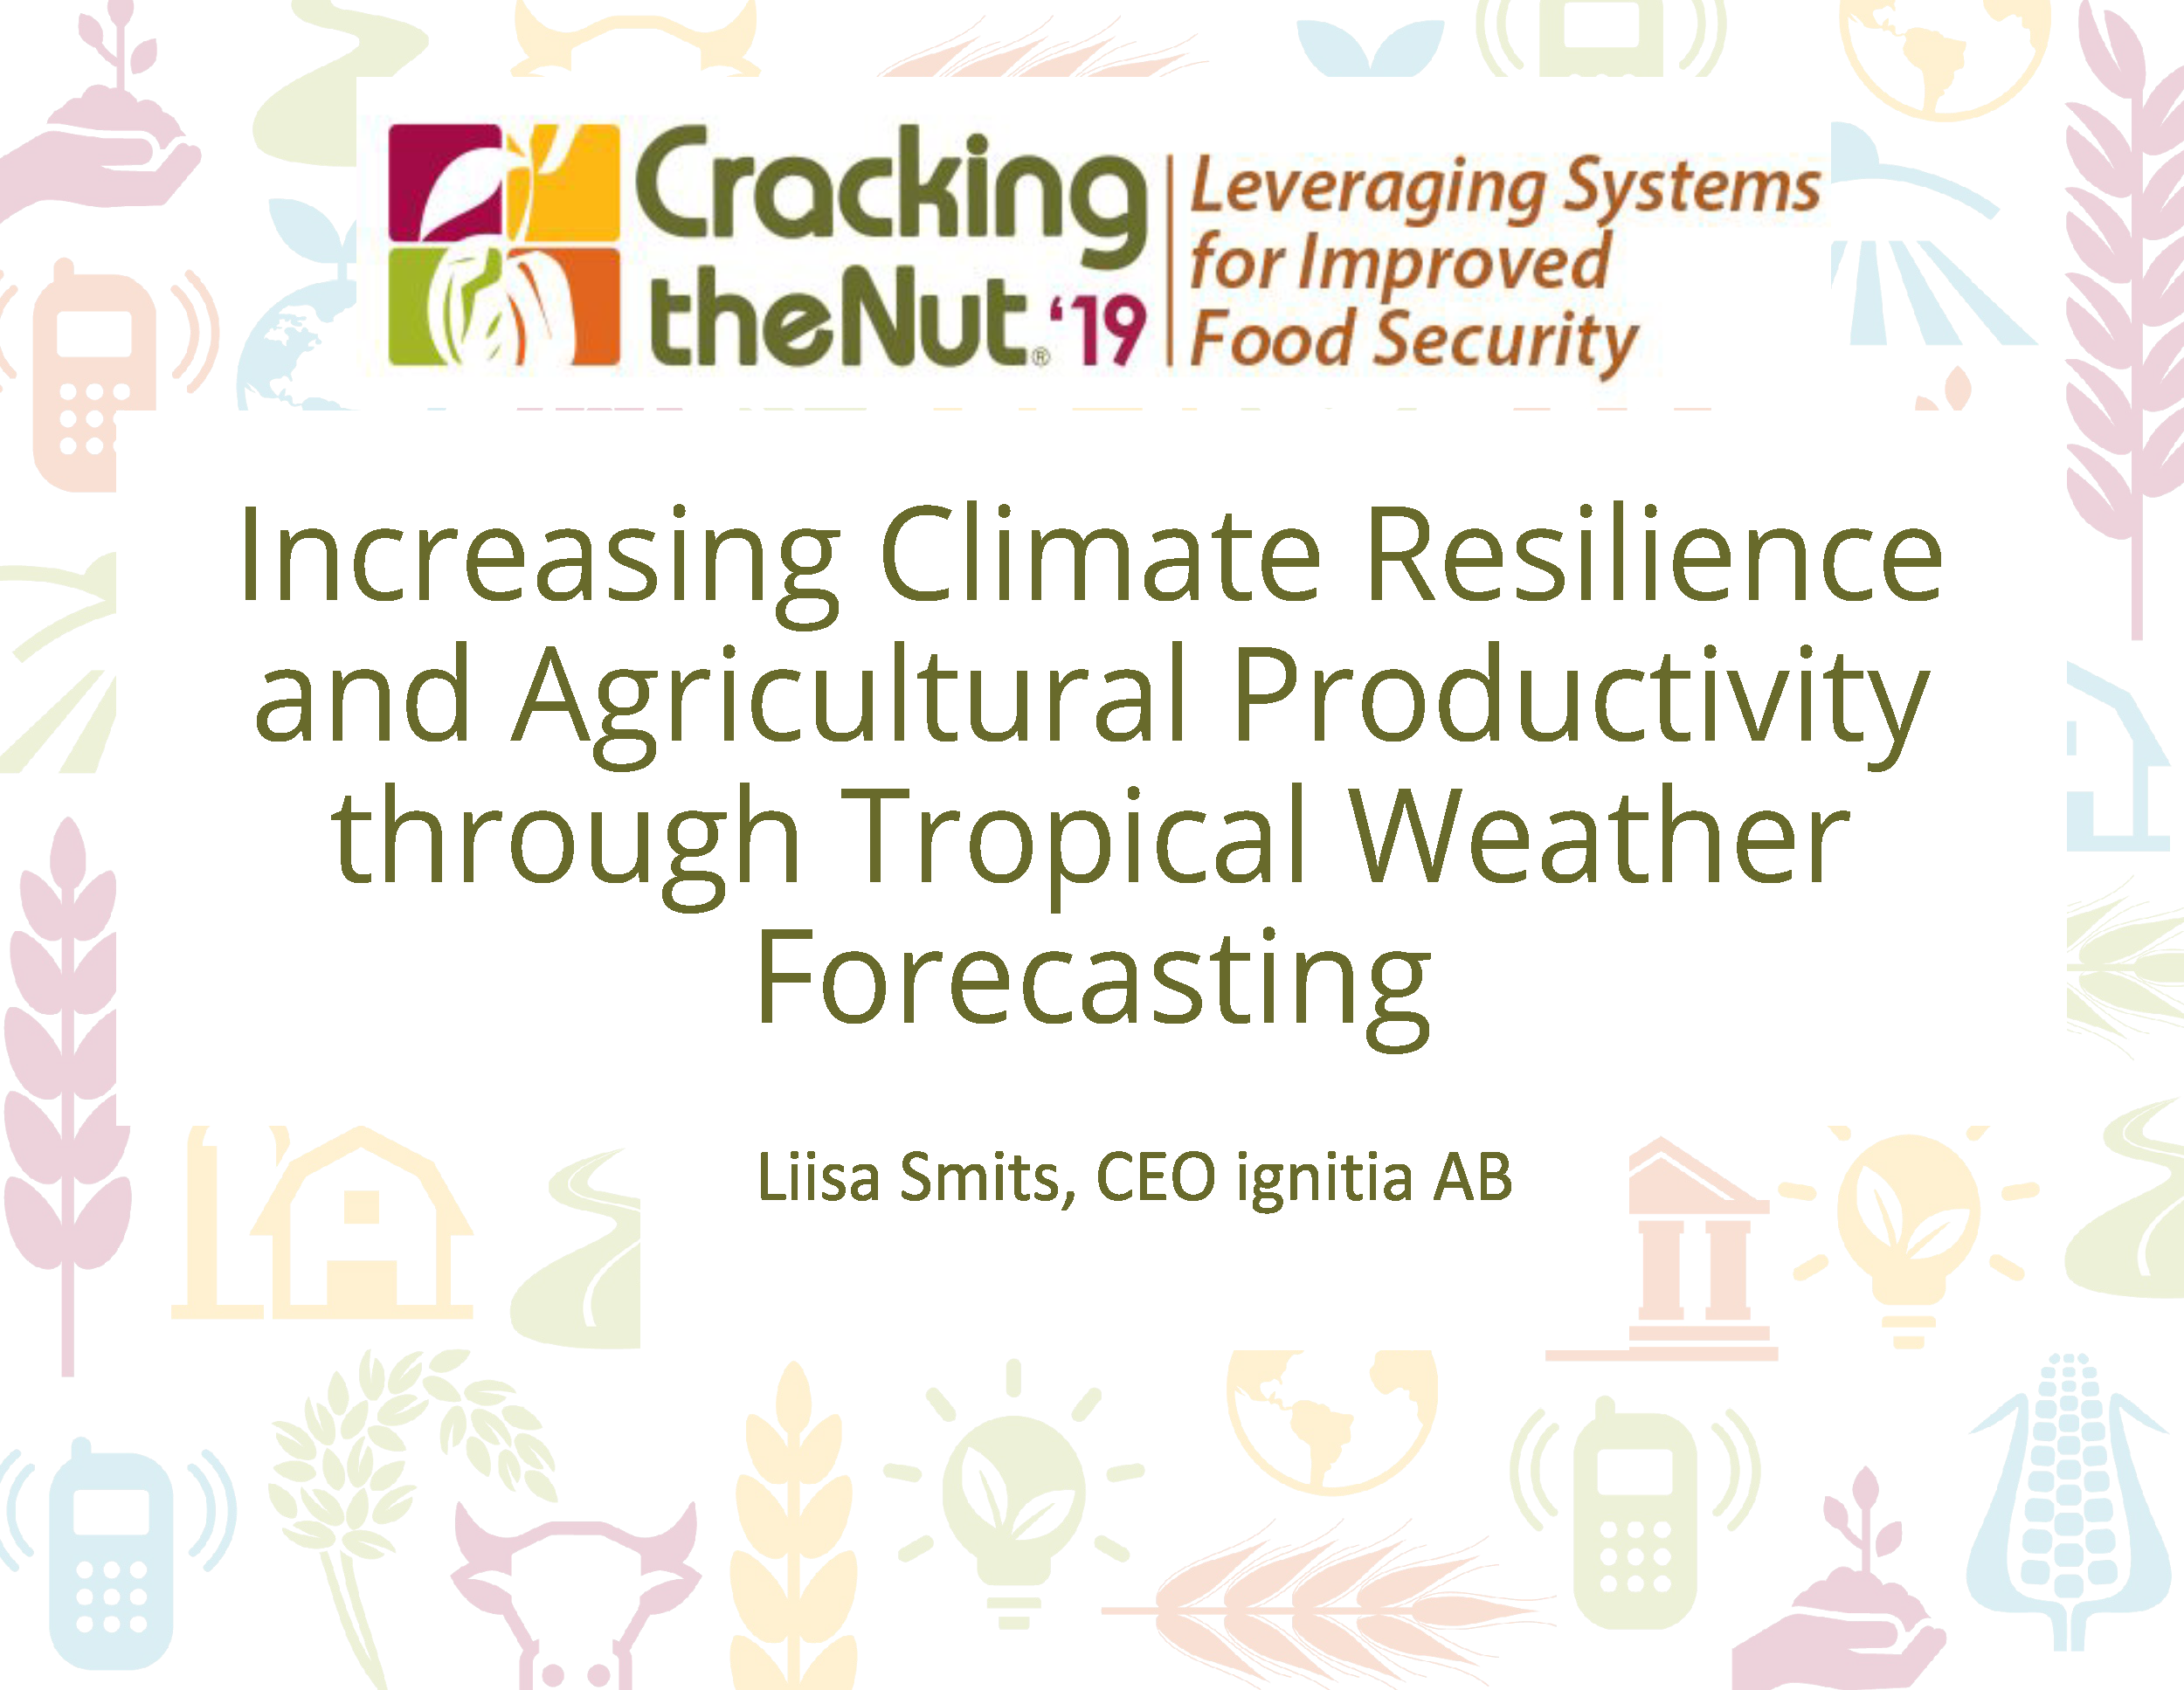 Session 1.1: Increasing Climate Resilience and Agricultural Productivity through Highly-Accurate, Mobile Tropical Weather Forecasting